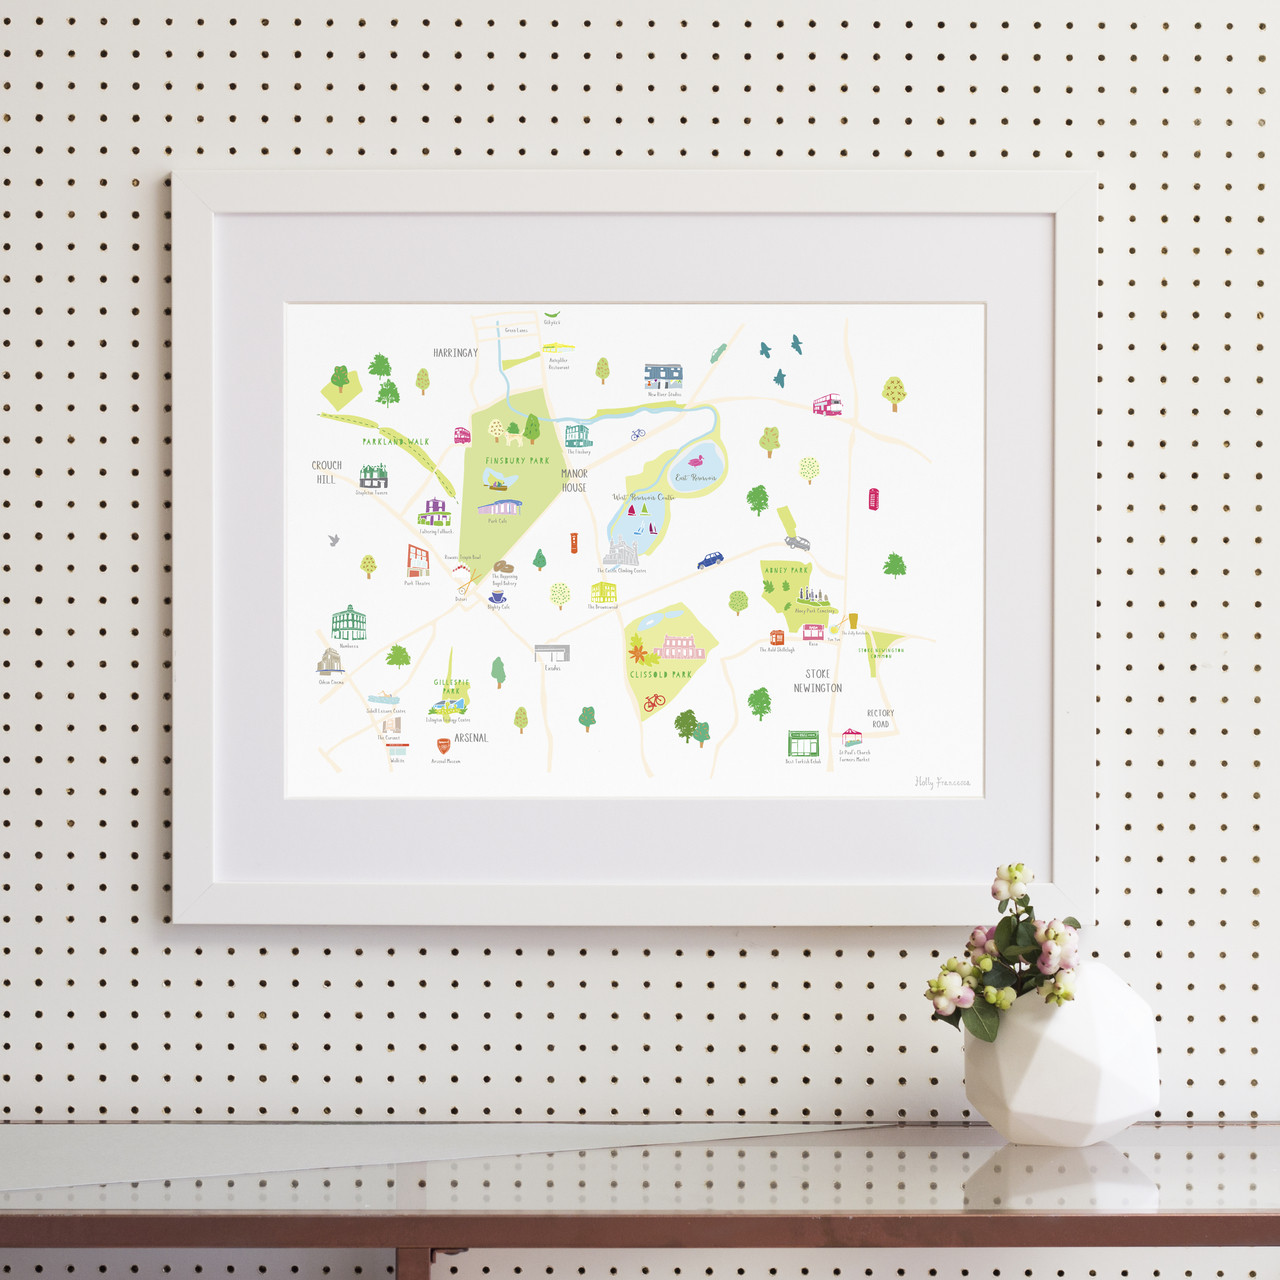 bfce609aa25 Illustrated hand drawn Finsbury Park   Stoke Newington map by UK artist  Holly Francesca. All